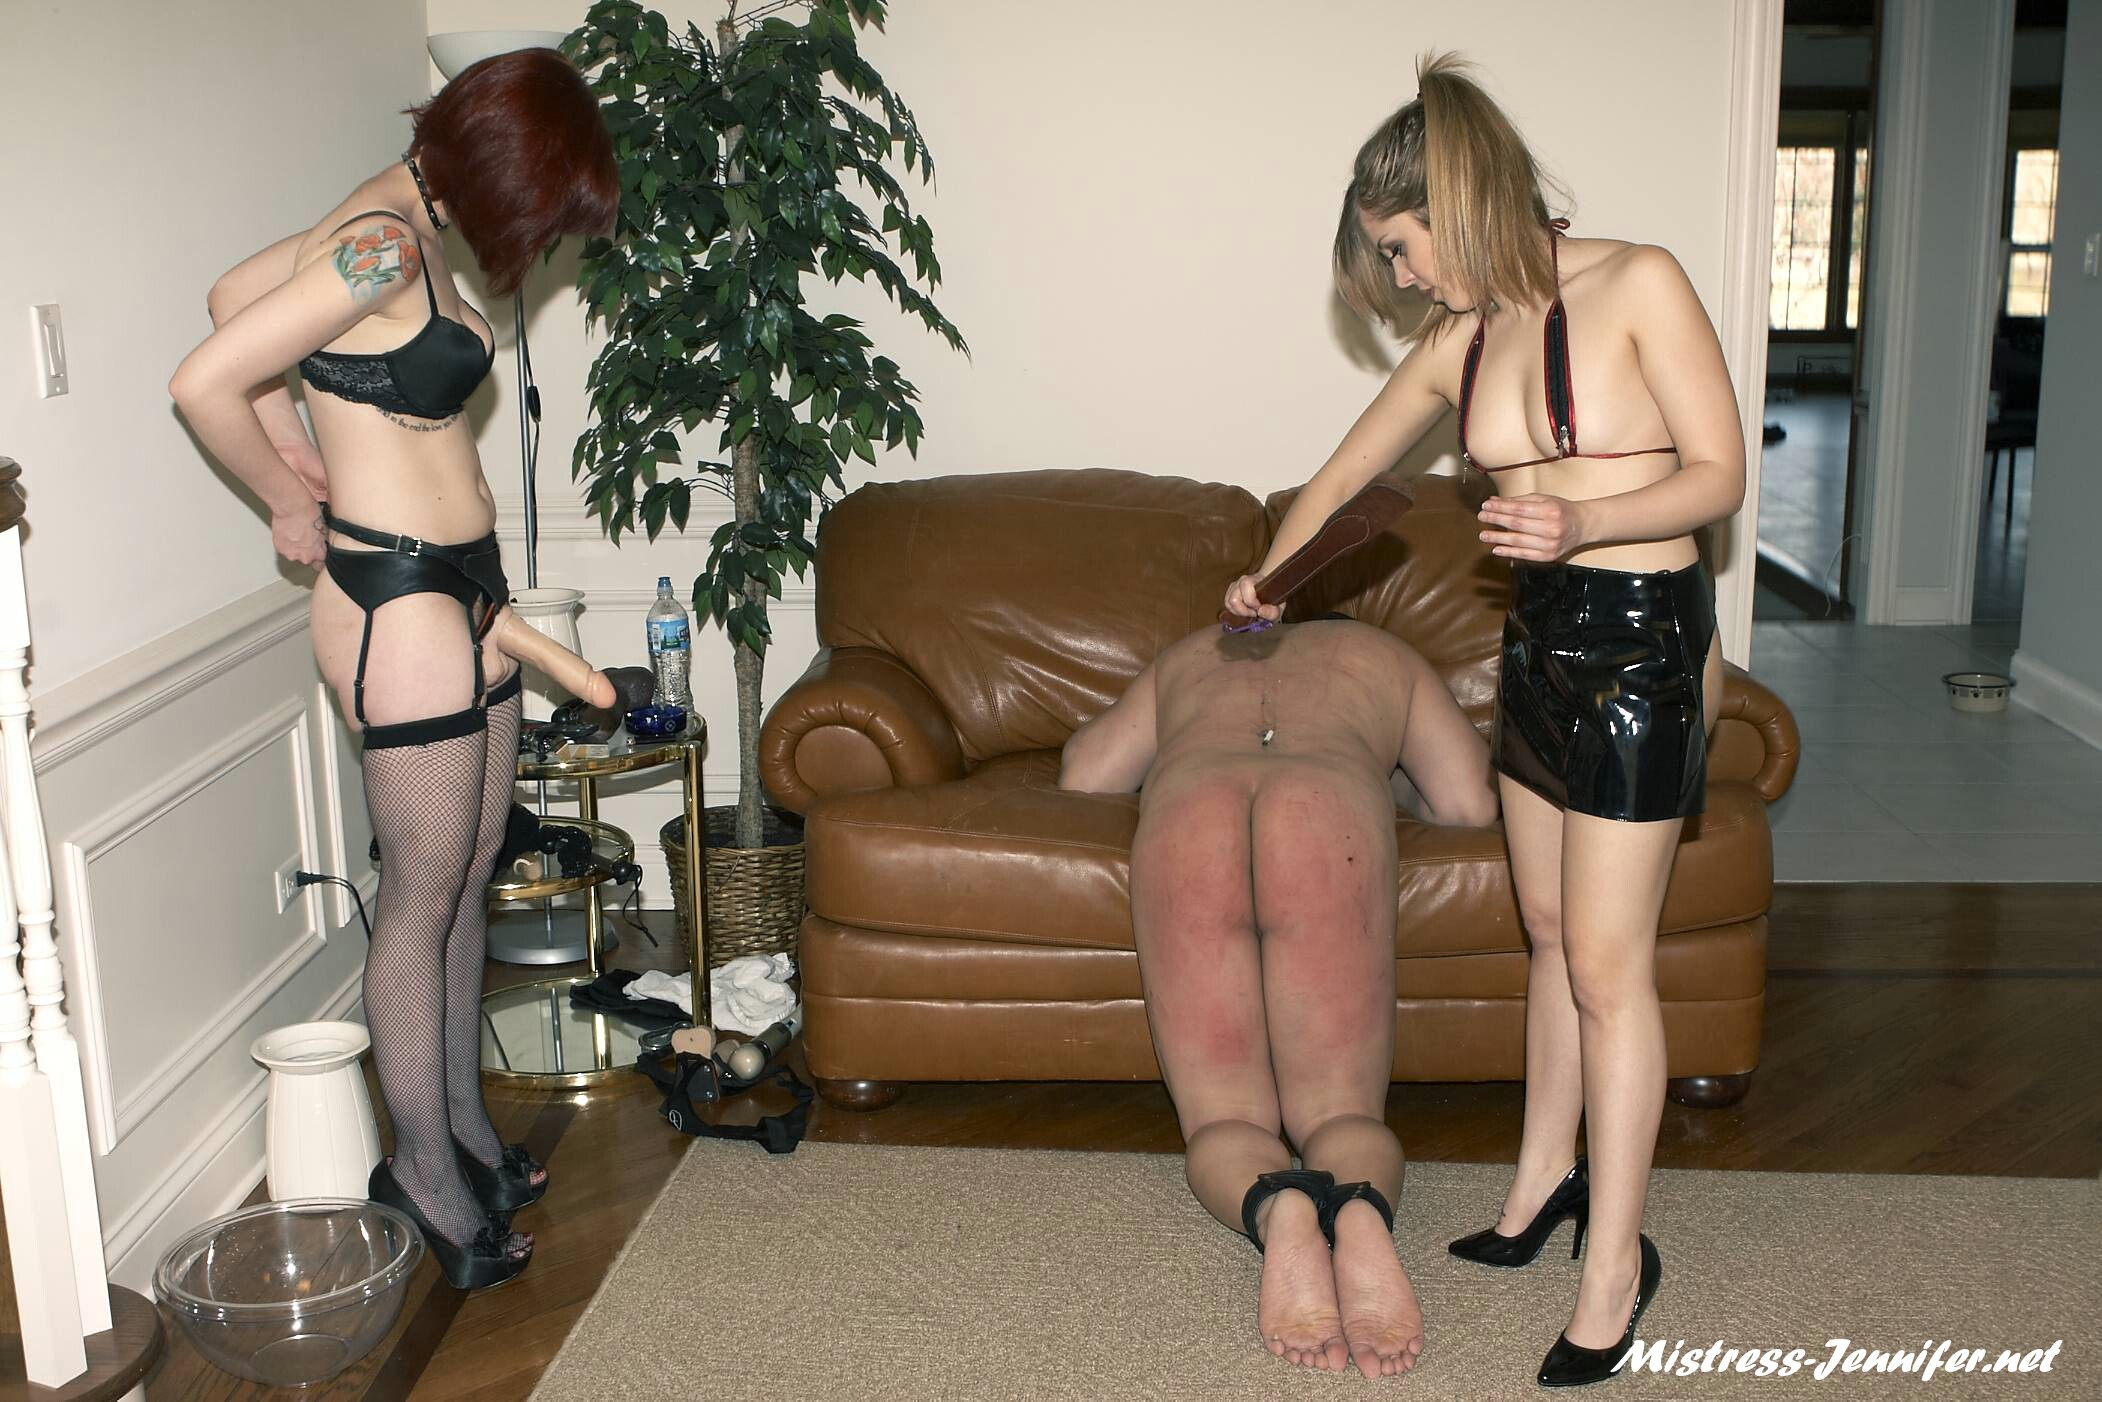 Dual Dominatrix tag squad strap on dildo and bashing